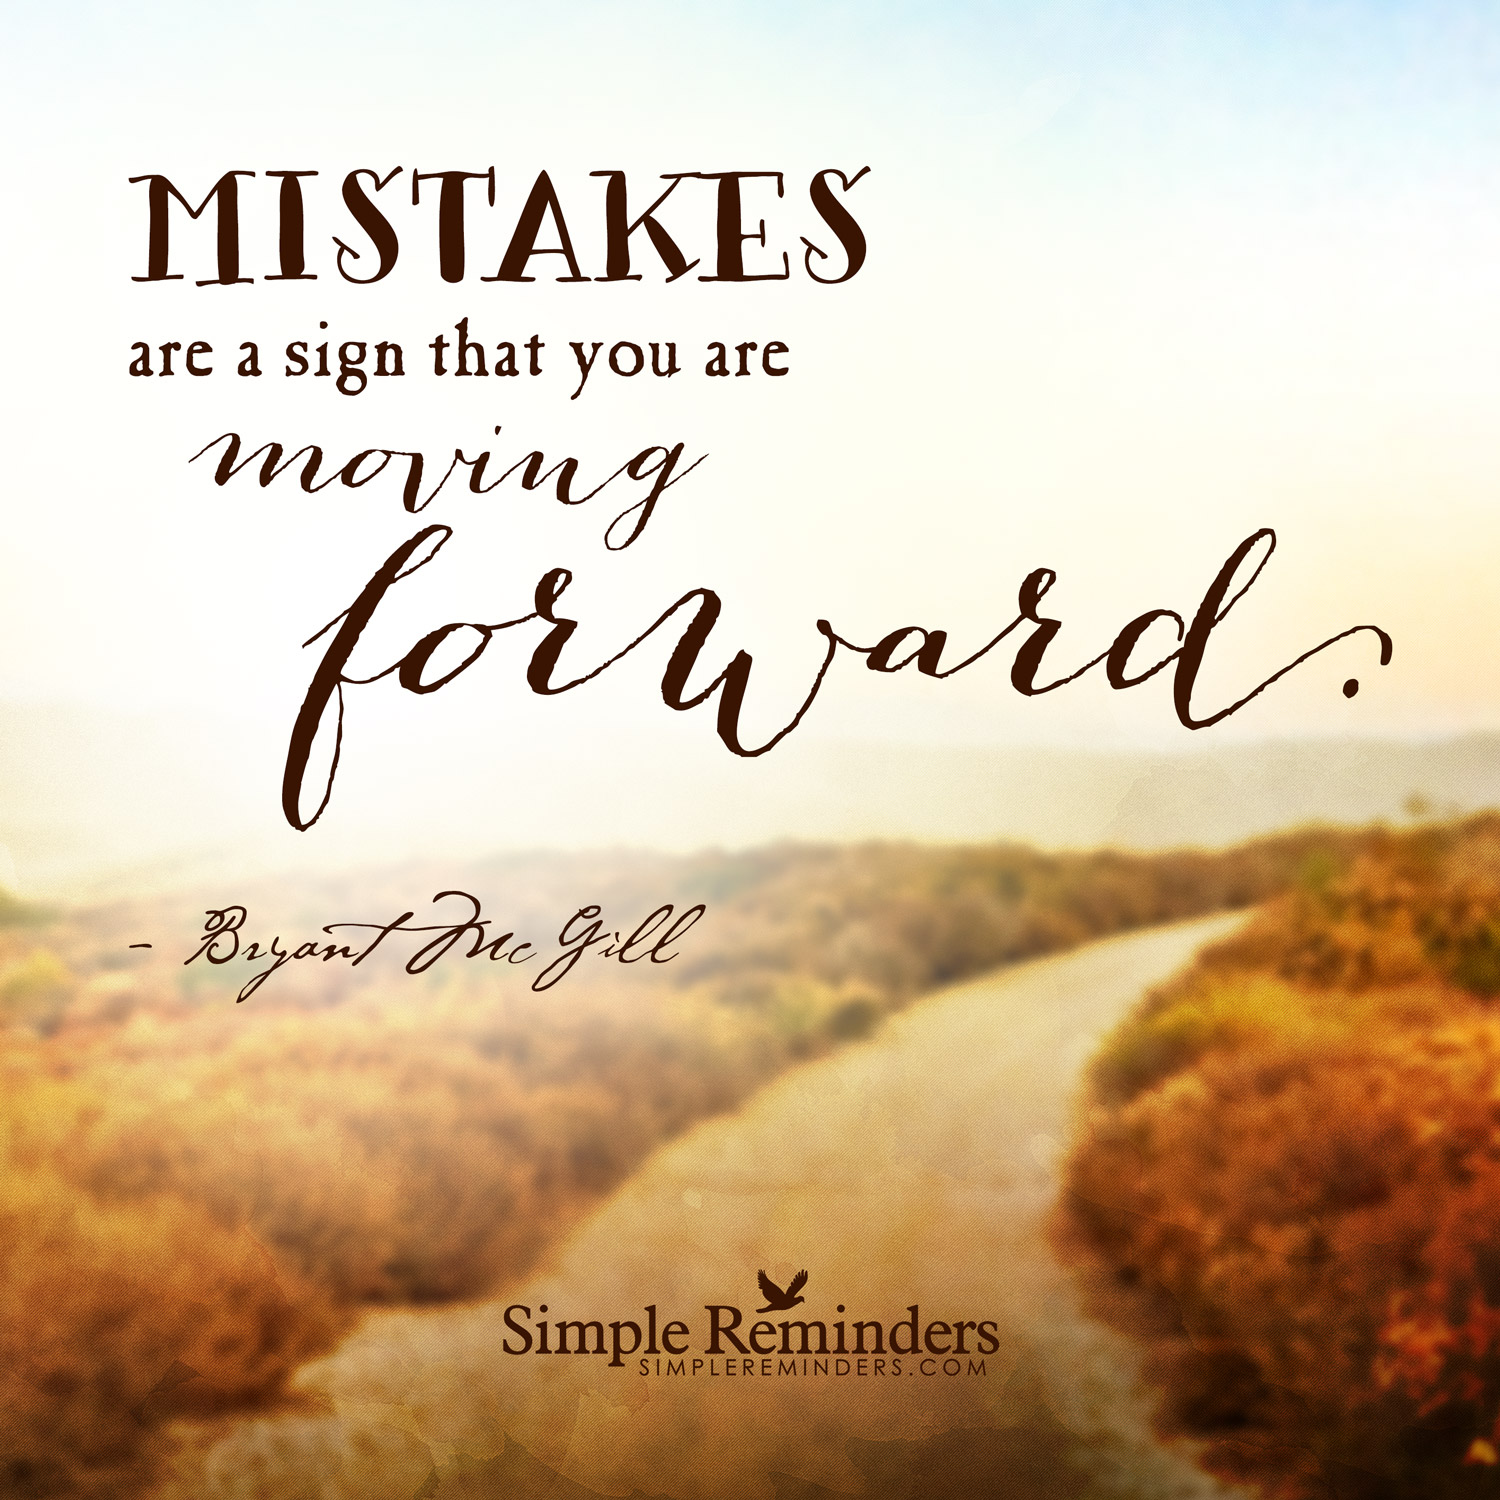 And Mistakes Quotes About Moving Forward. QuotesGram